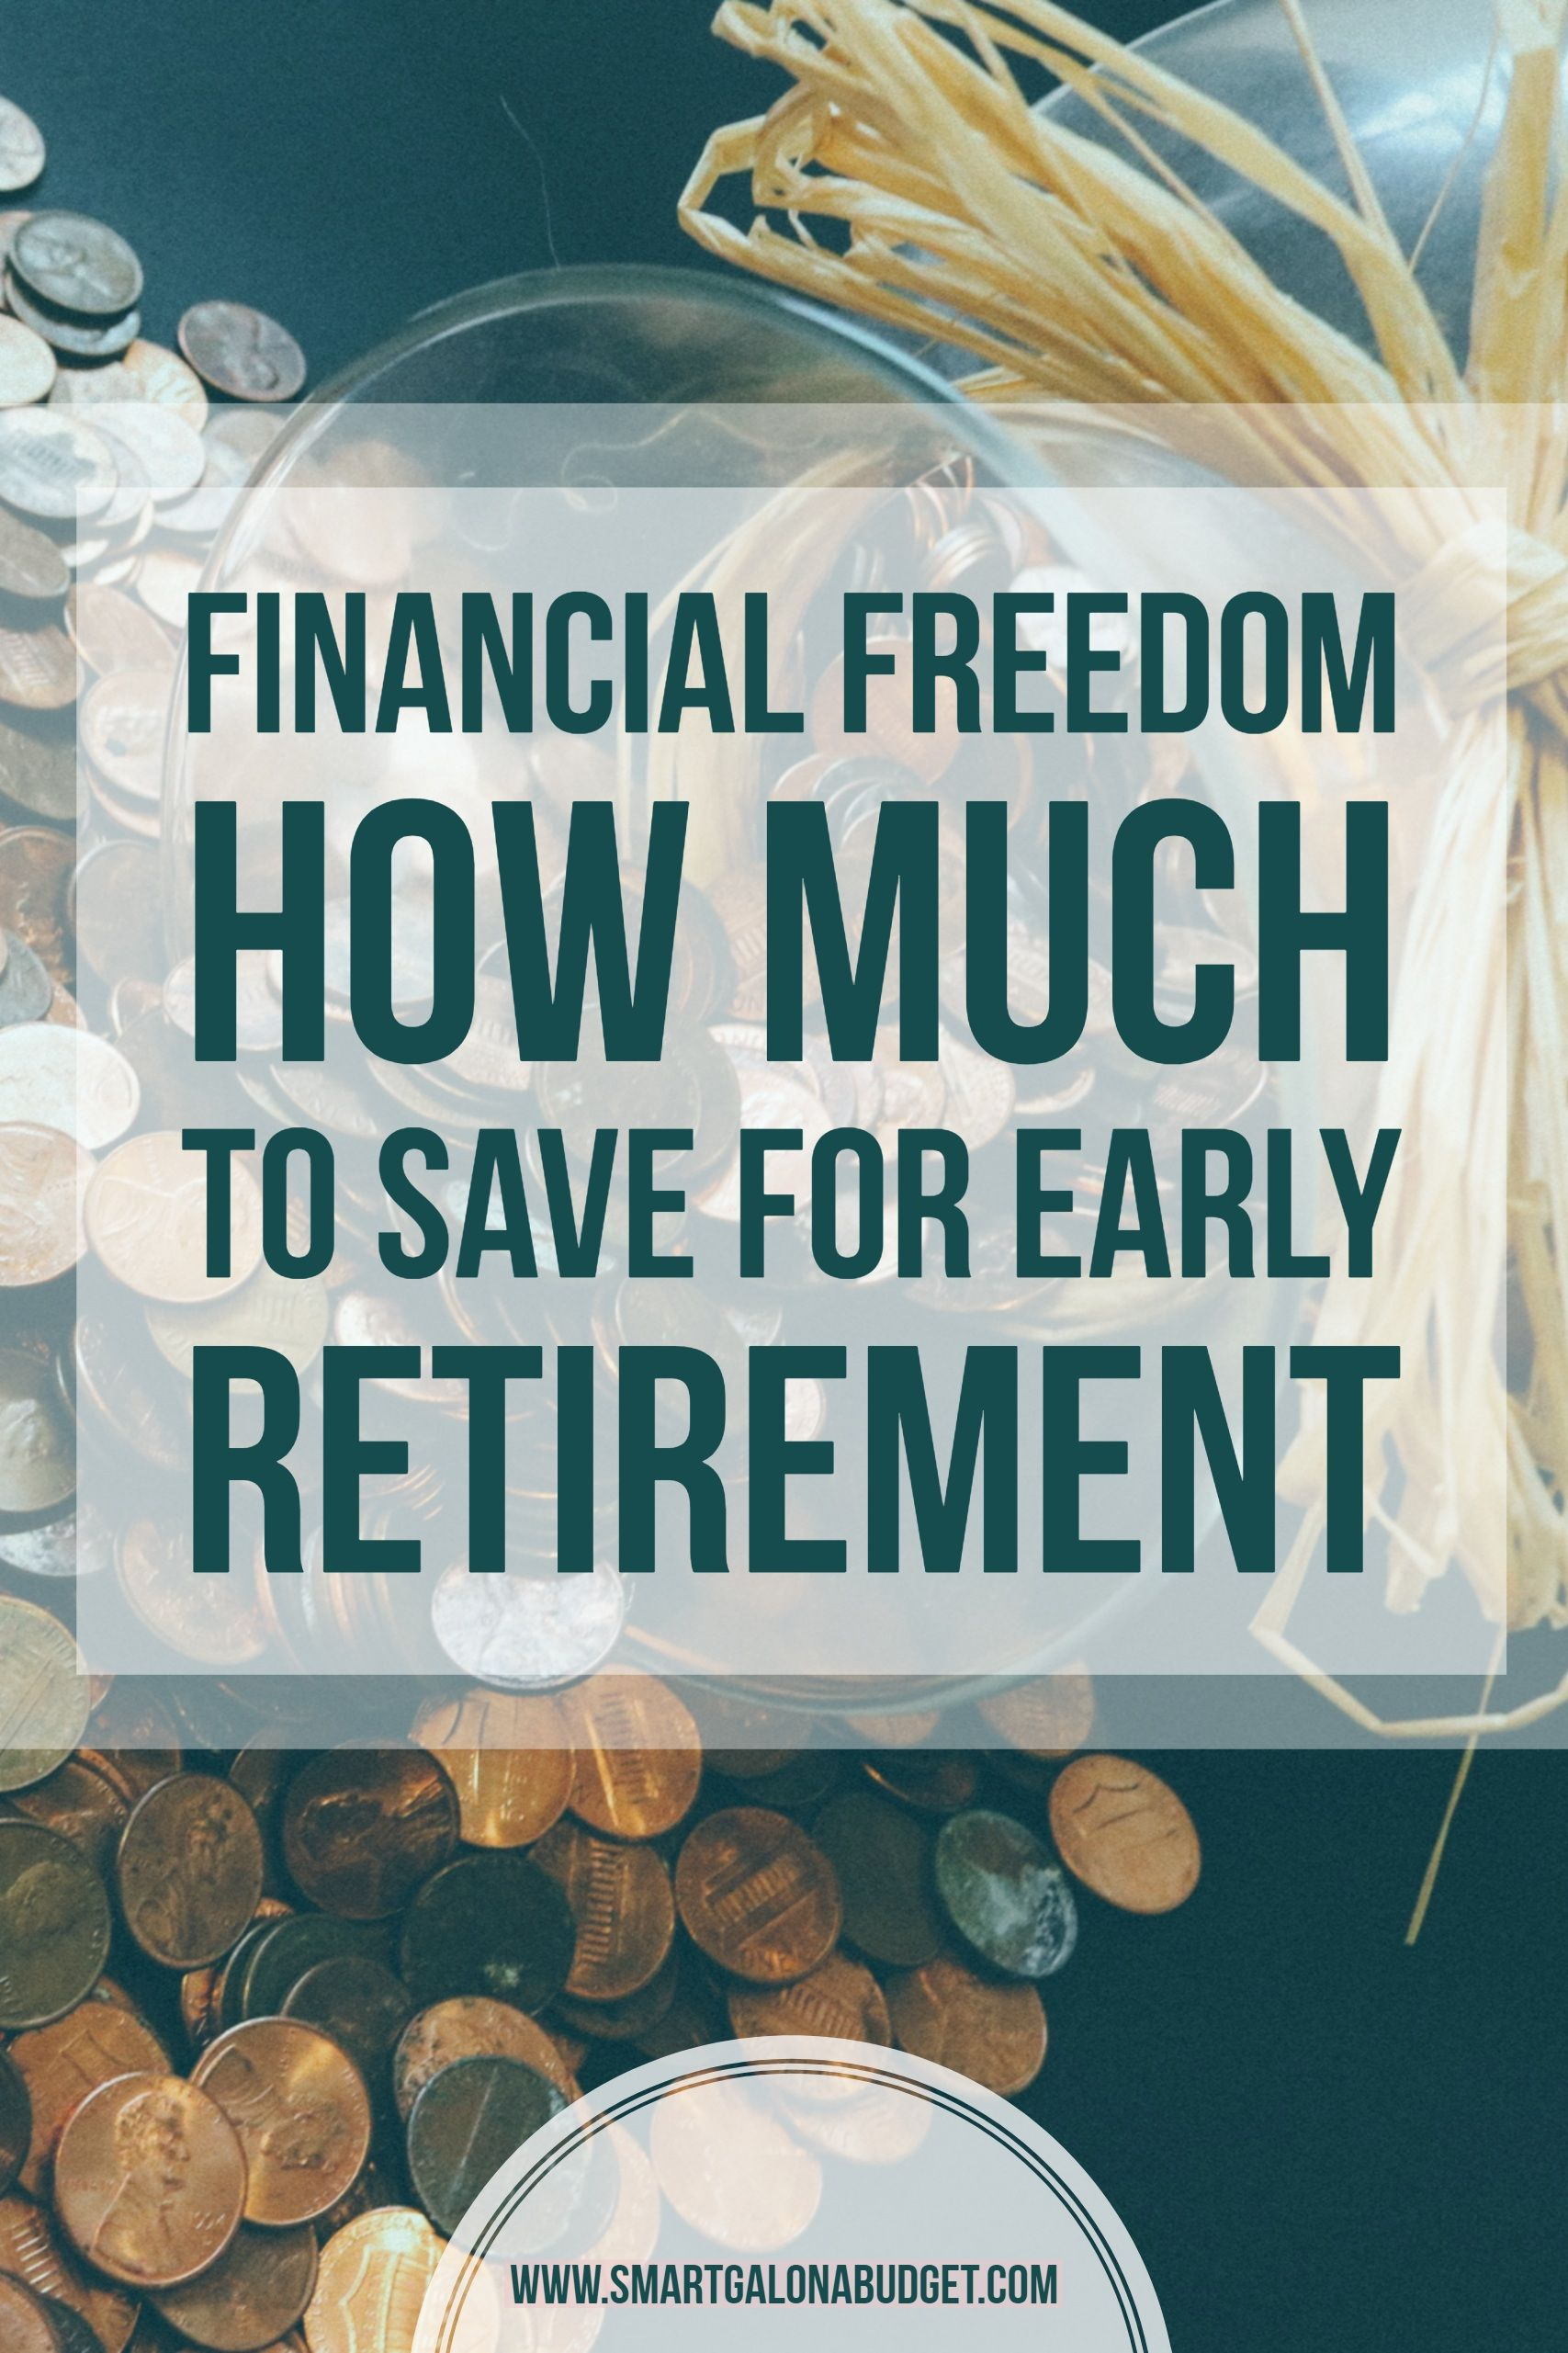 Financial Freedom How Much To Save For Early Retirememt